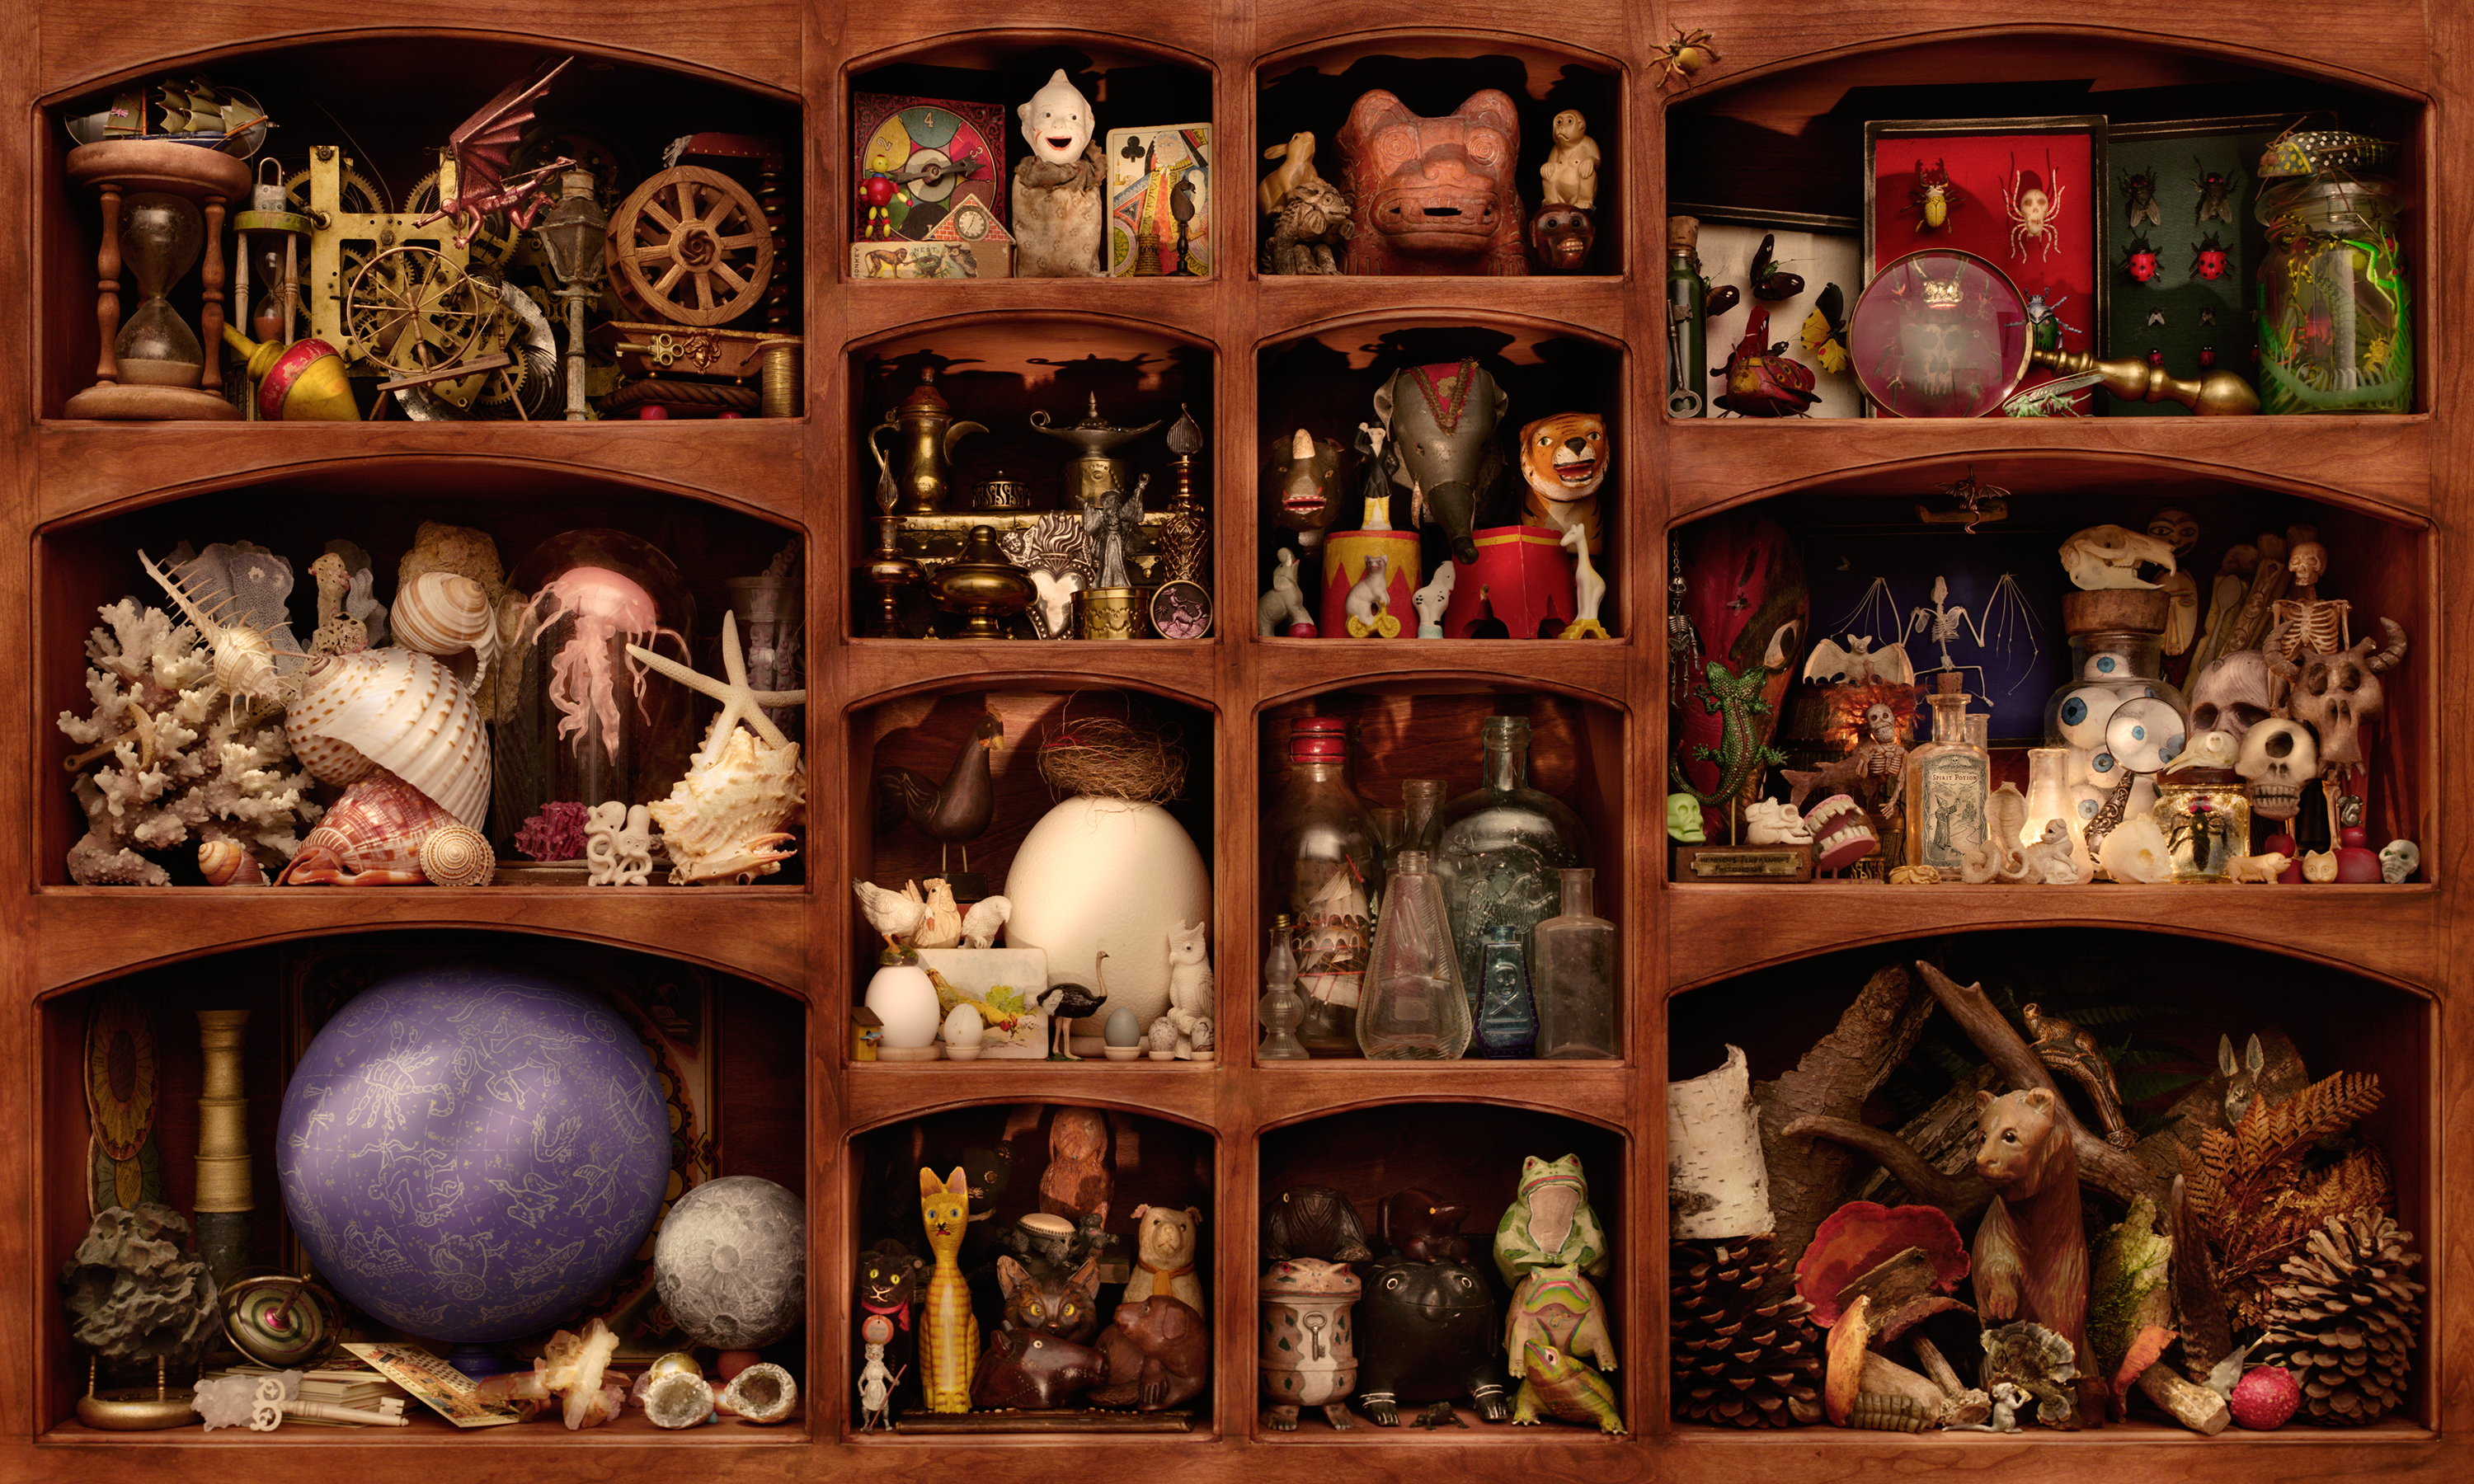 """Walter Wick, <i> In A Scary Scary Cupboard from Can You See What I See? On A Scary Scary Night</i>, 2007, Pigmented inkjet photograph, 50"""" x 30"""", Gift of Walter Wick and Linda Cheverton Wick"""